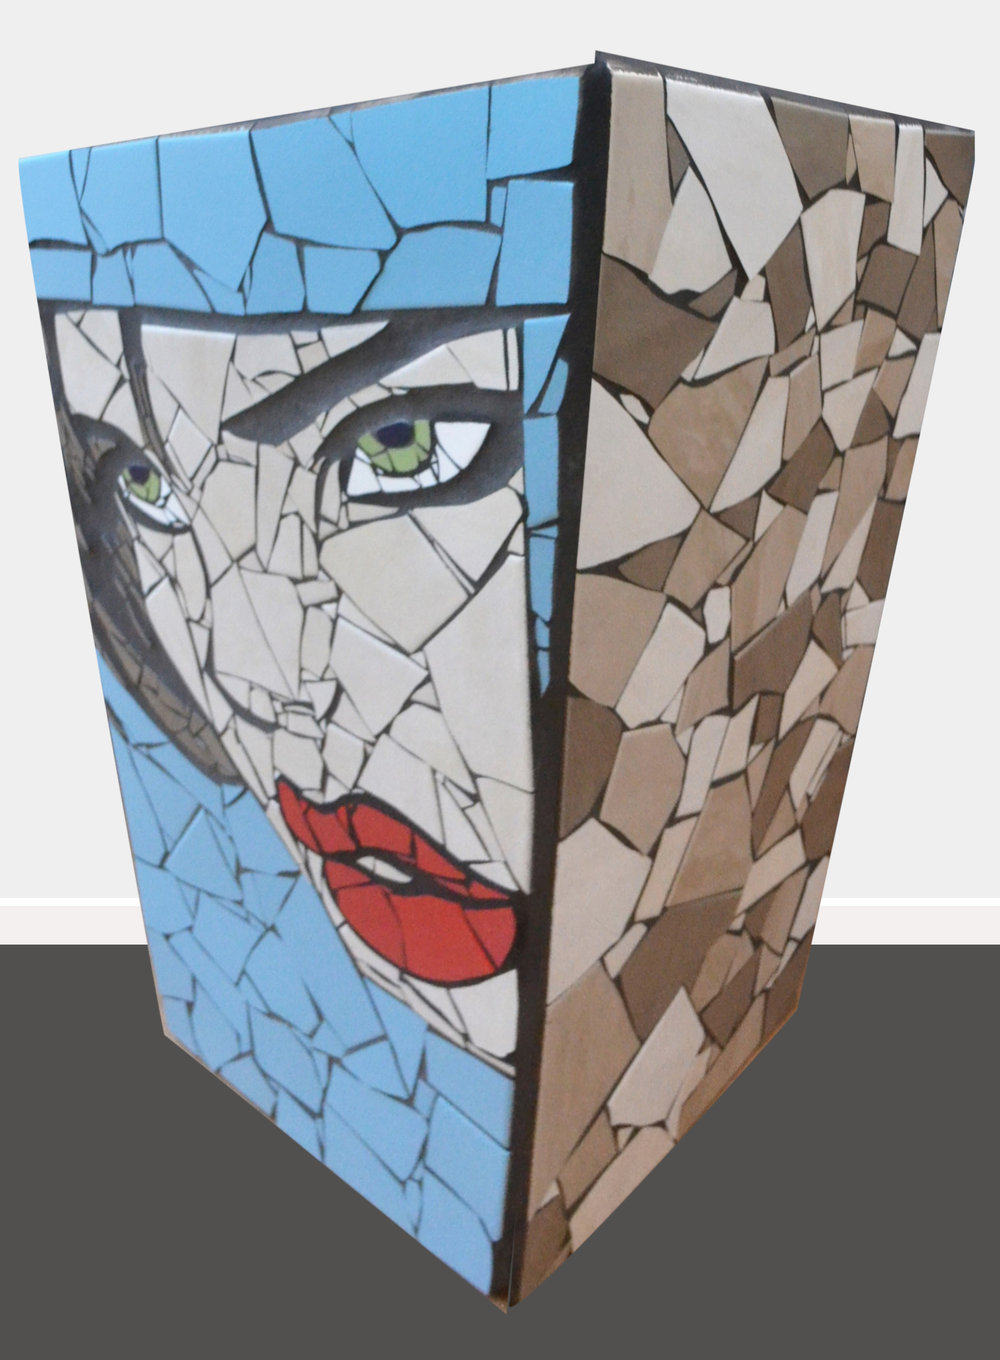 Amelia  Danielle Fernandez, pop art mosaic planter, indoor/outdoor (drainage hole at bottom), 630mm x 430mm. Amelia is the detective in the movie 'The Bone Collector', played by Angelina Jolie.   $4,900.00